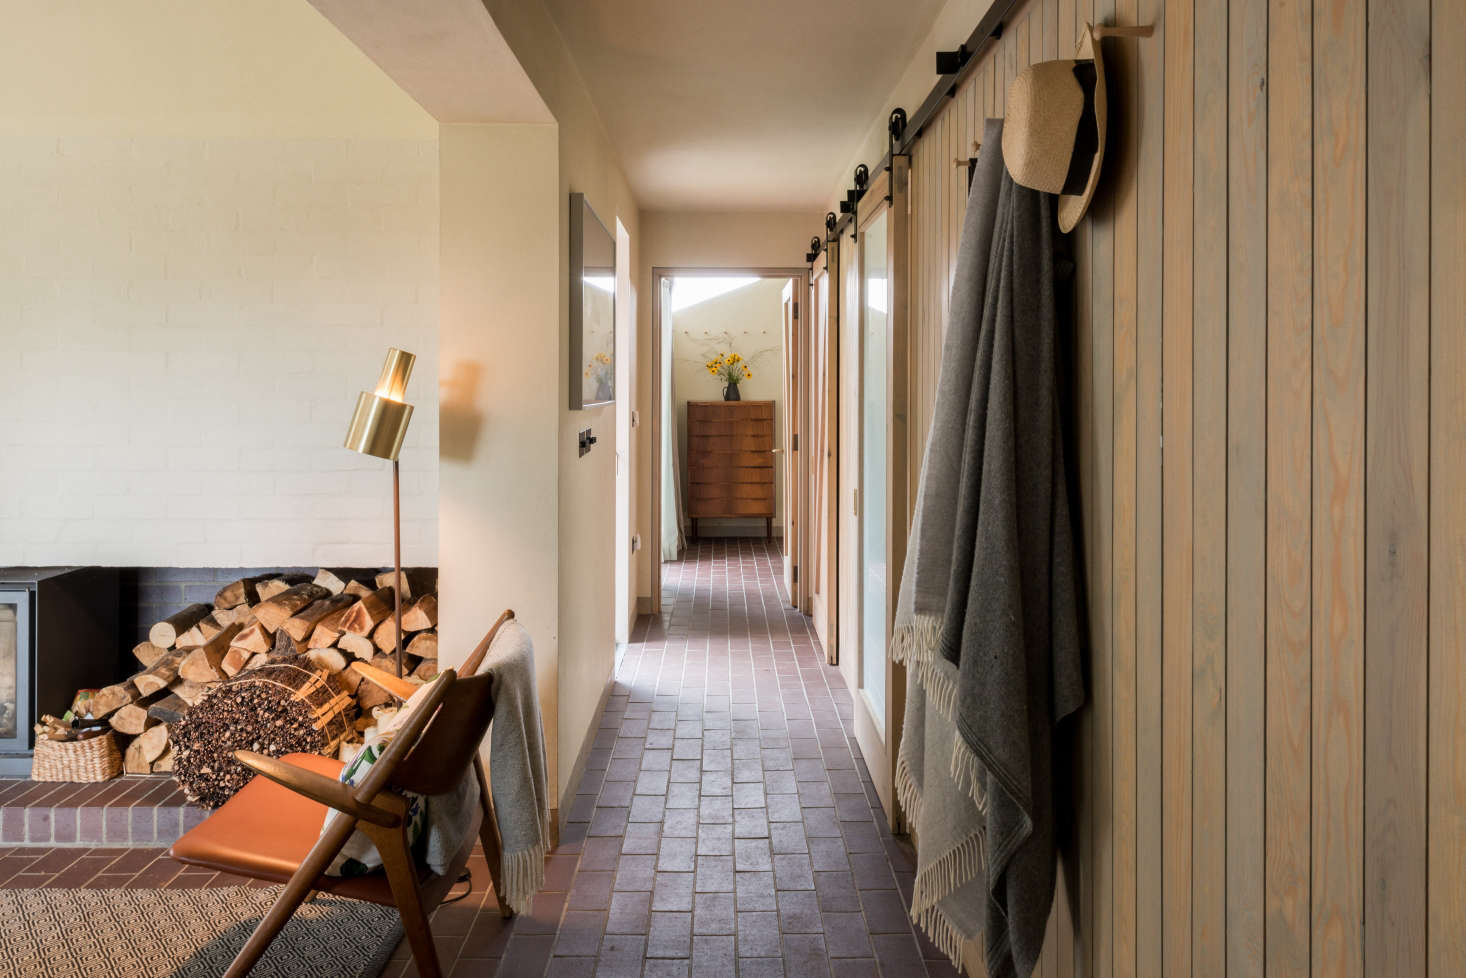 The brick fire surround in the living area contains a deep recess for logs and kindling.